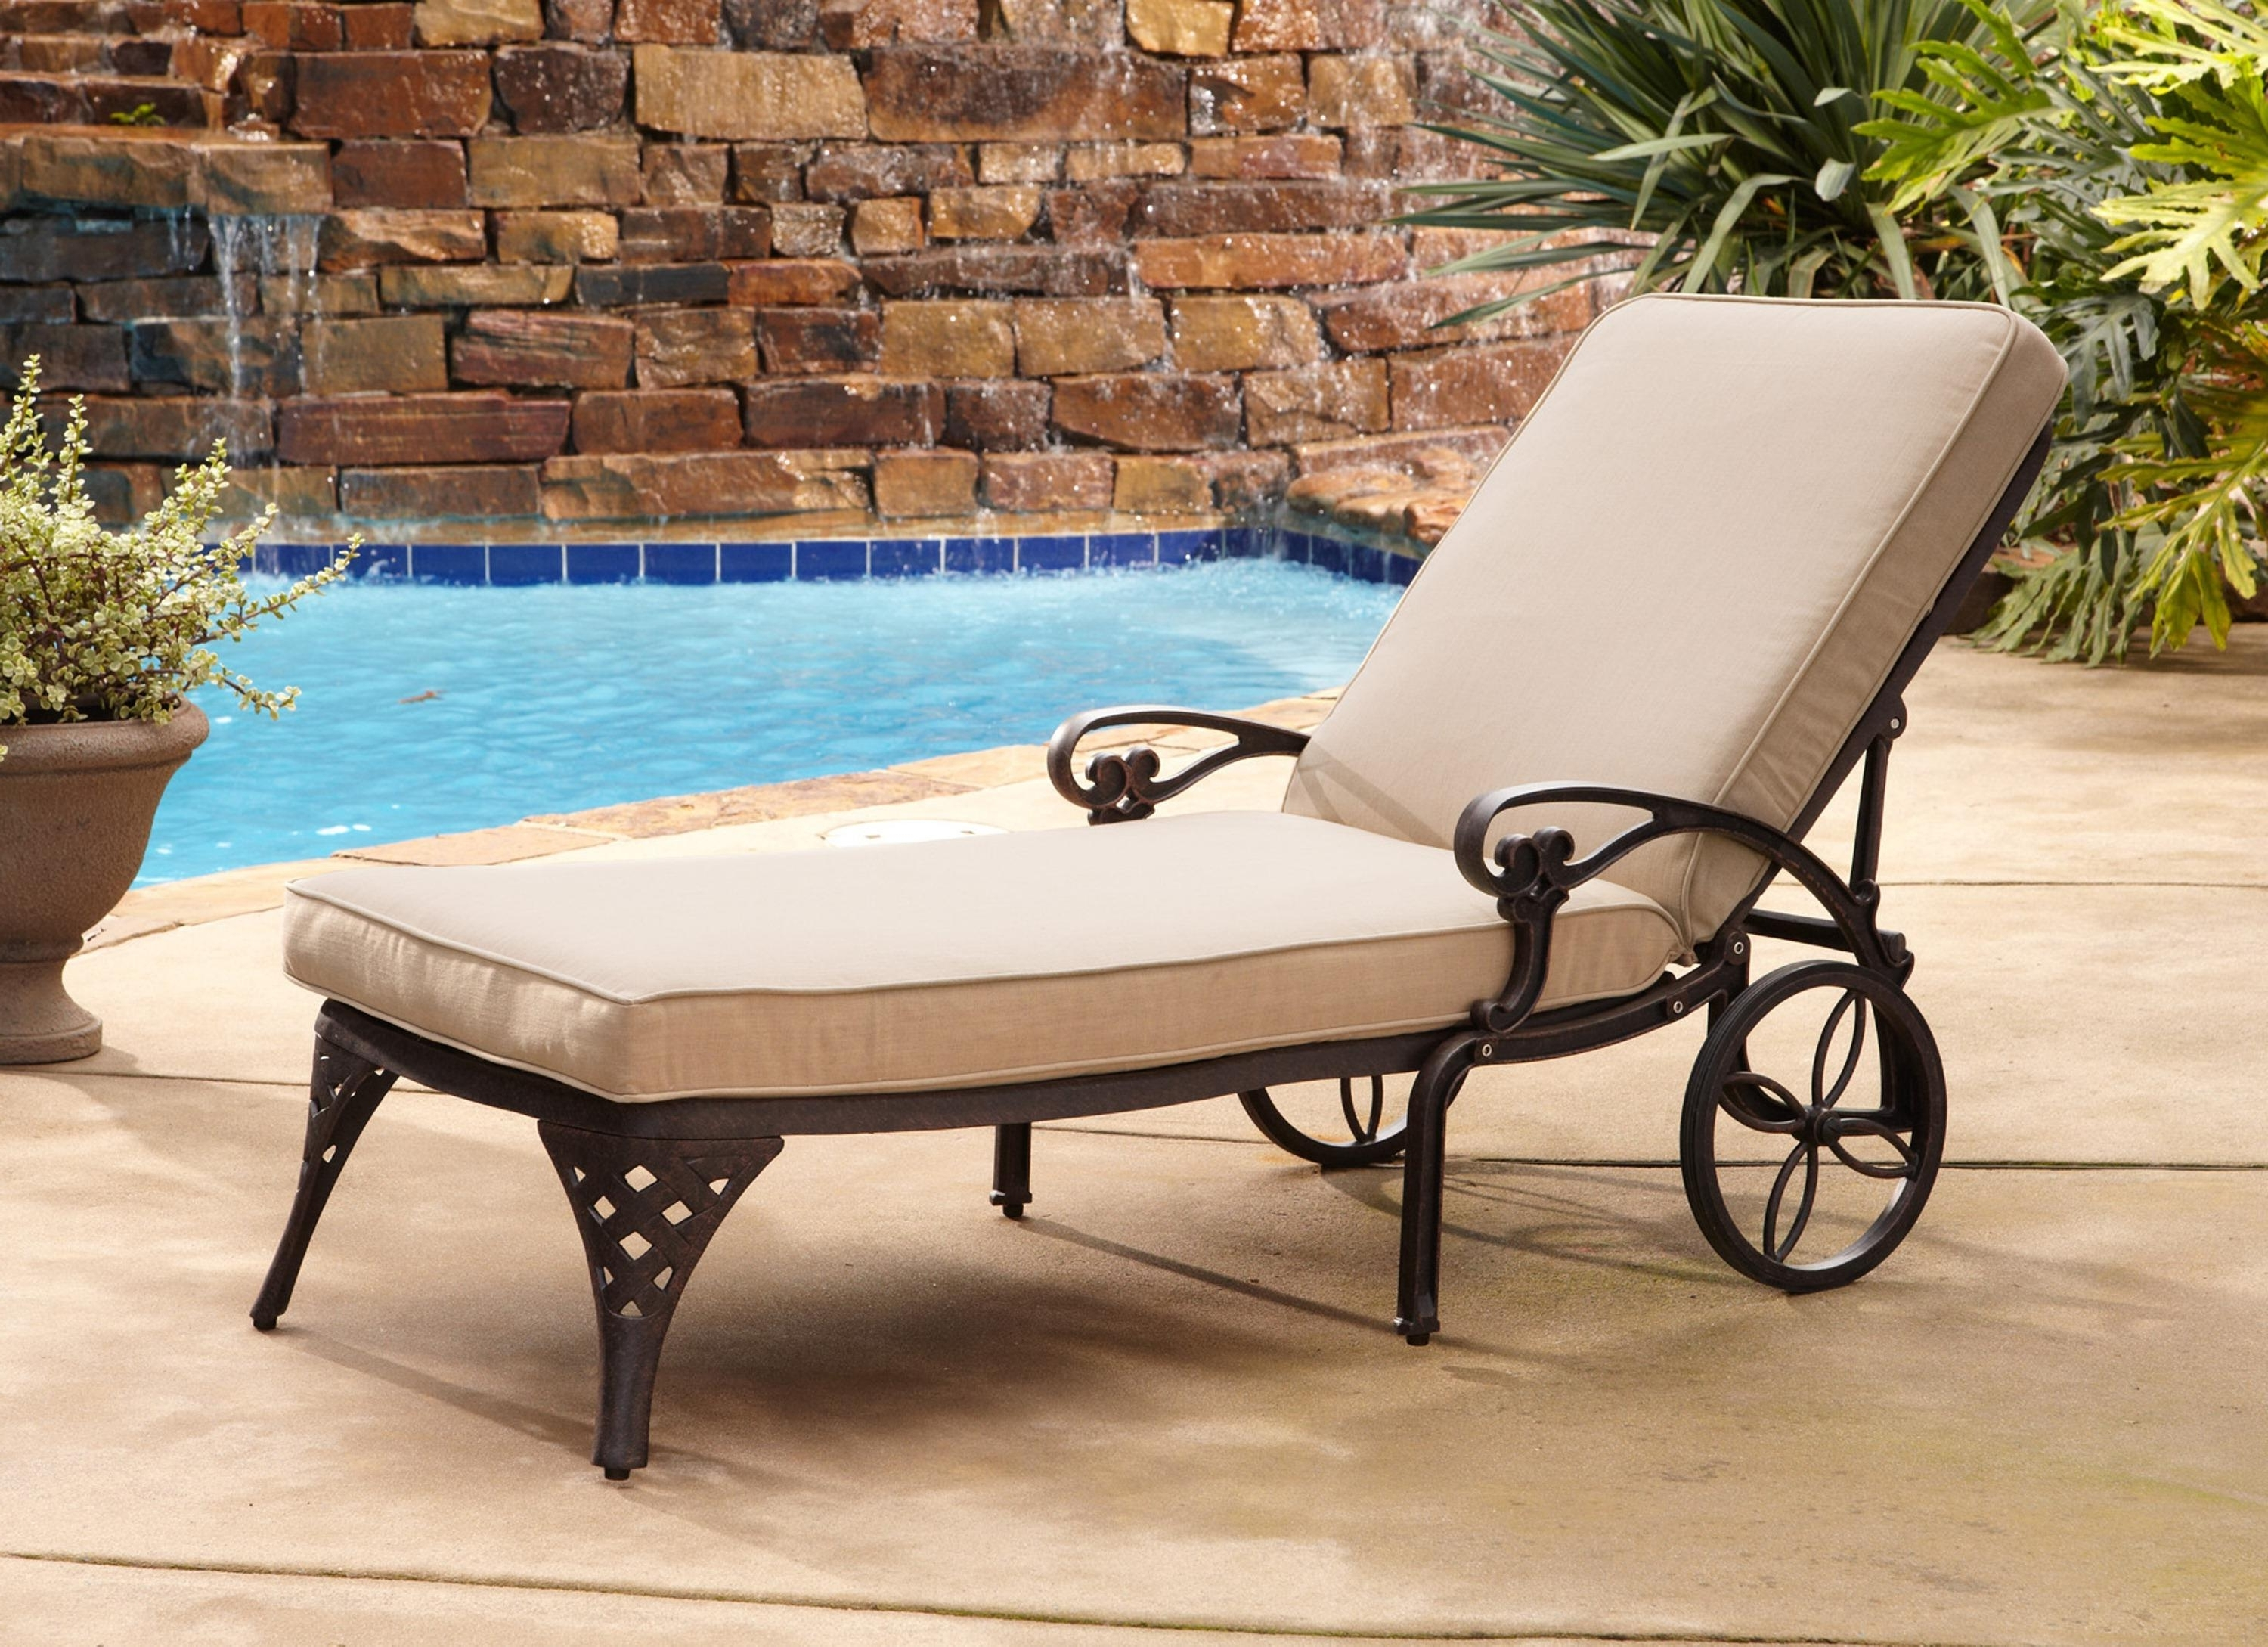 Outdoor Metal Chaise Lounge Chairs With Regard To Fashionable Metal Chaise Lounge Chairs With Wheels • Lounge Chairs Ideas (View 12 of 15)